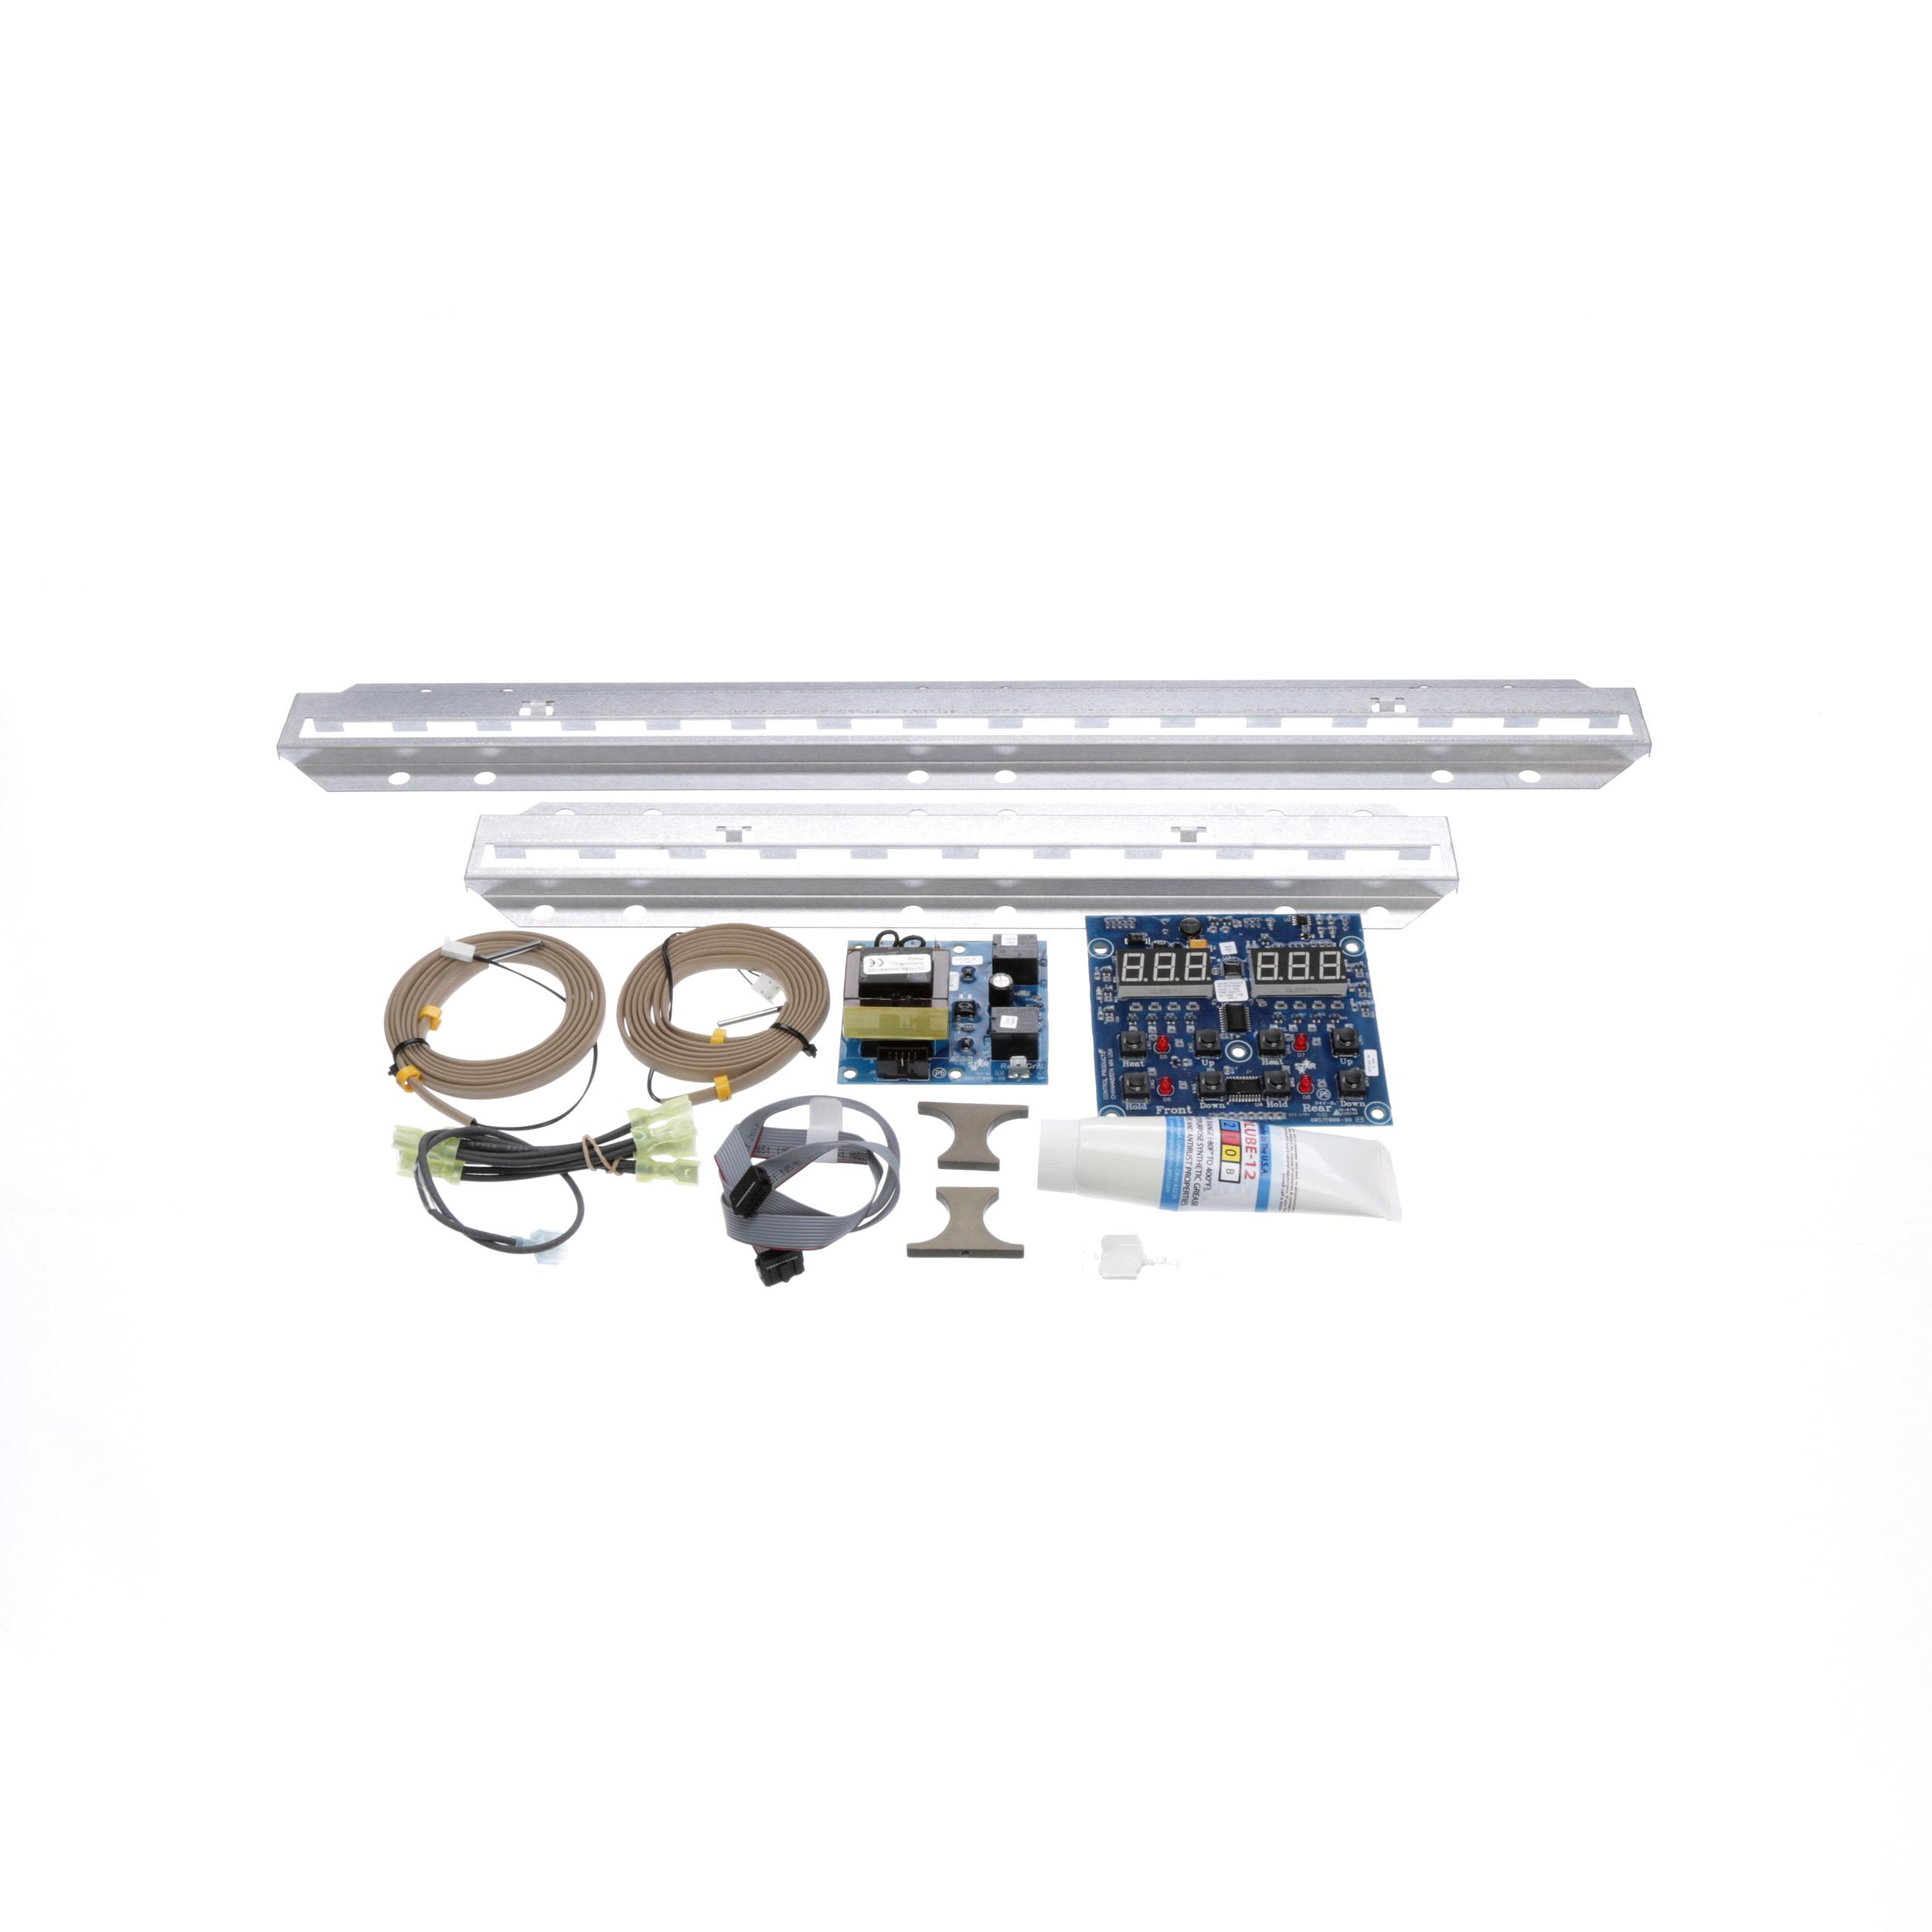 STAR KIT, POWER BOARD & CNTRL/DSPLY BRD